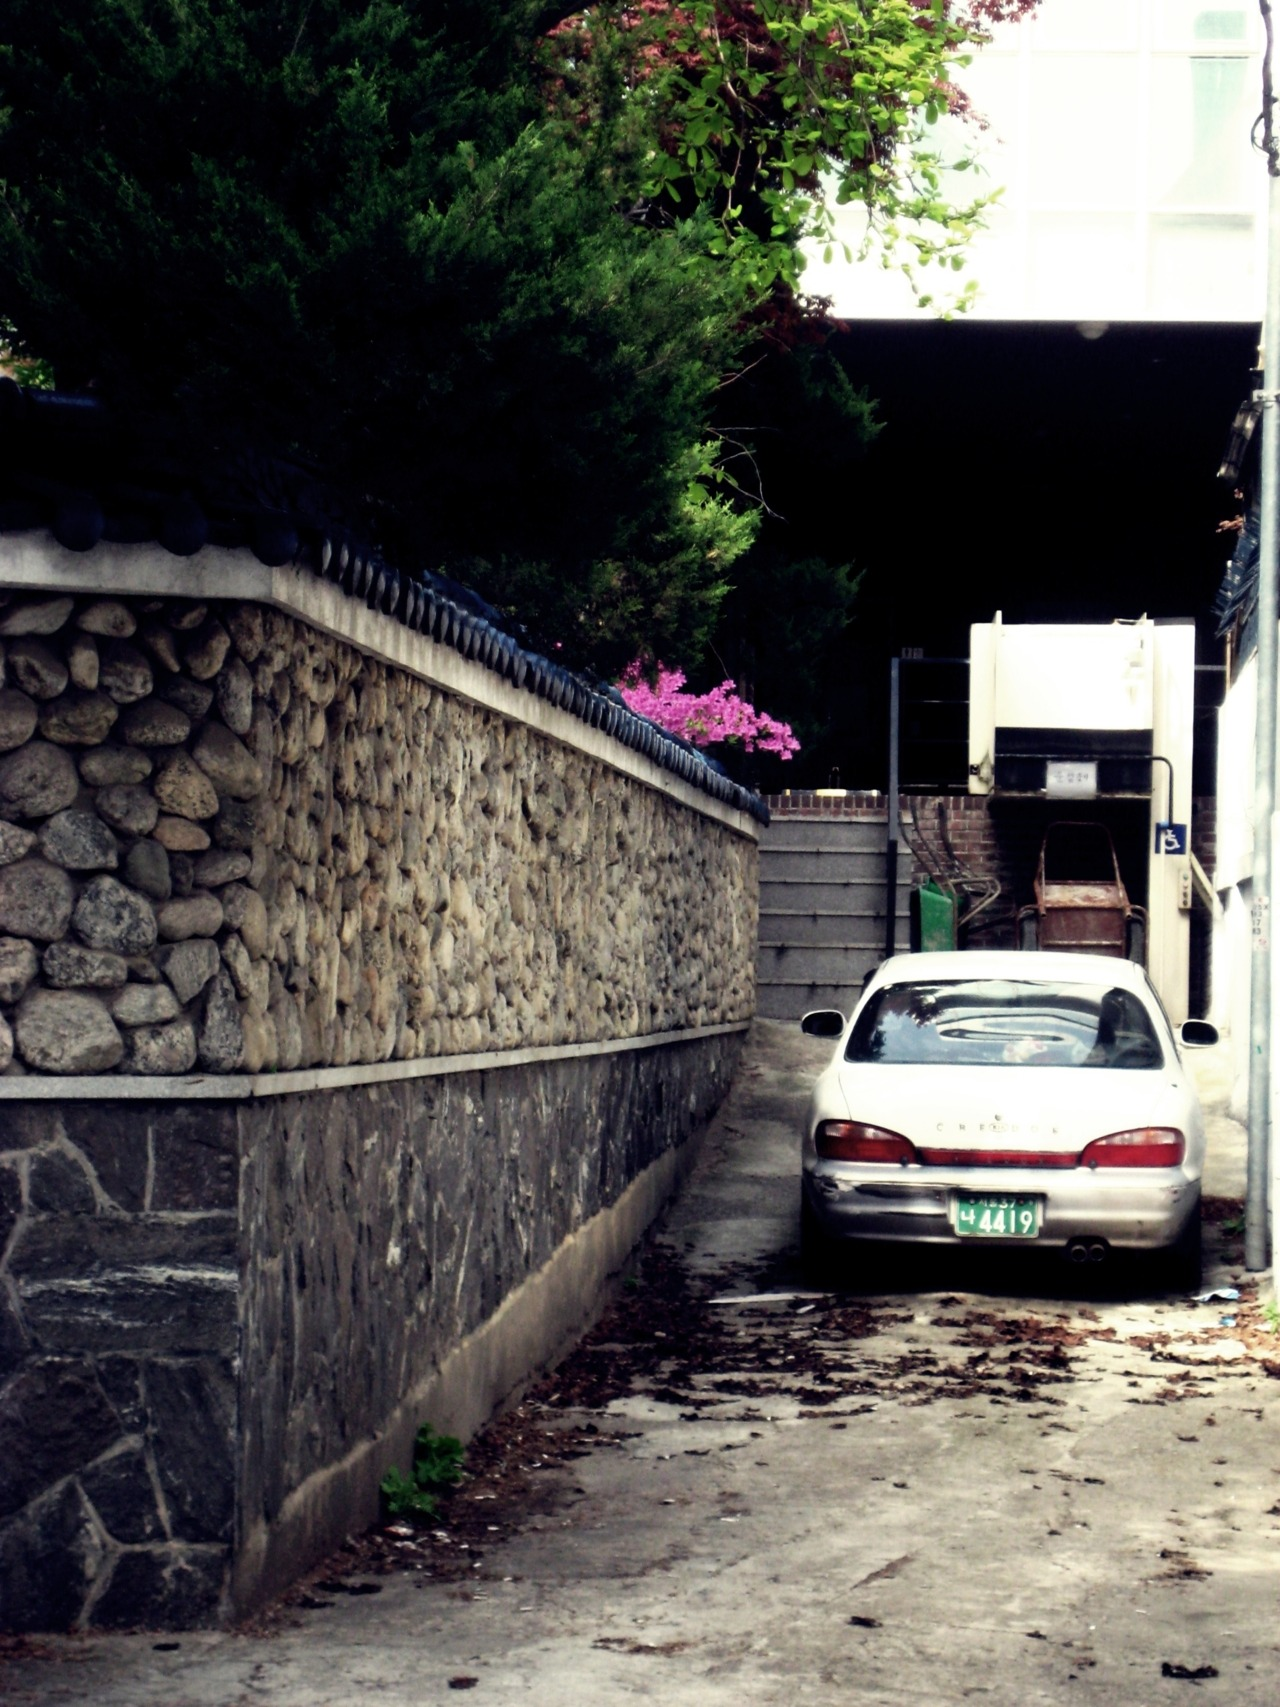 The Spring in the alley photo by me. Seoul, South Korea.